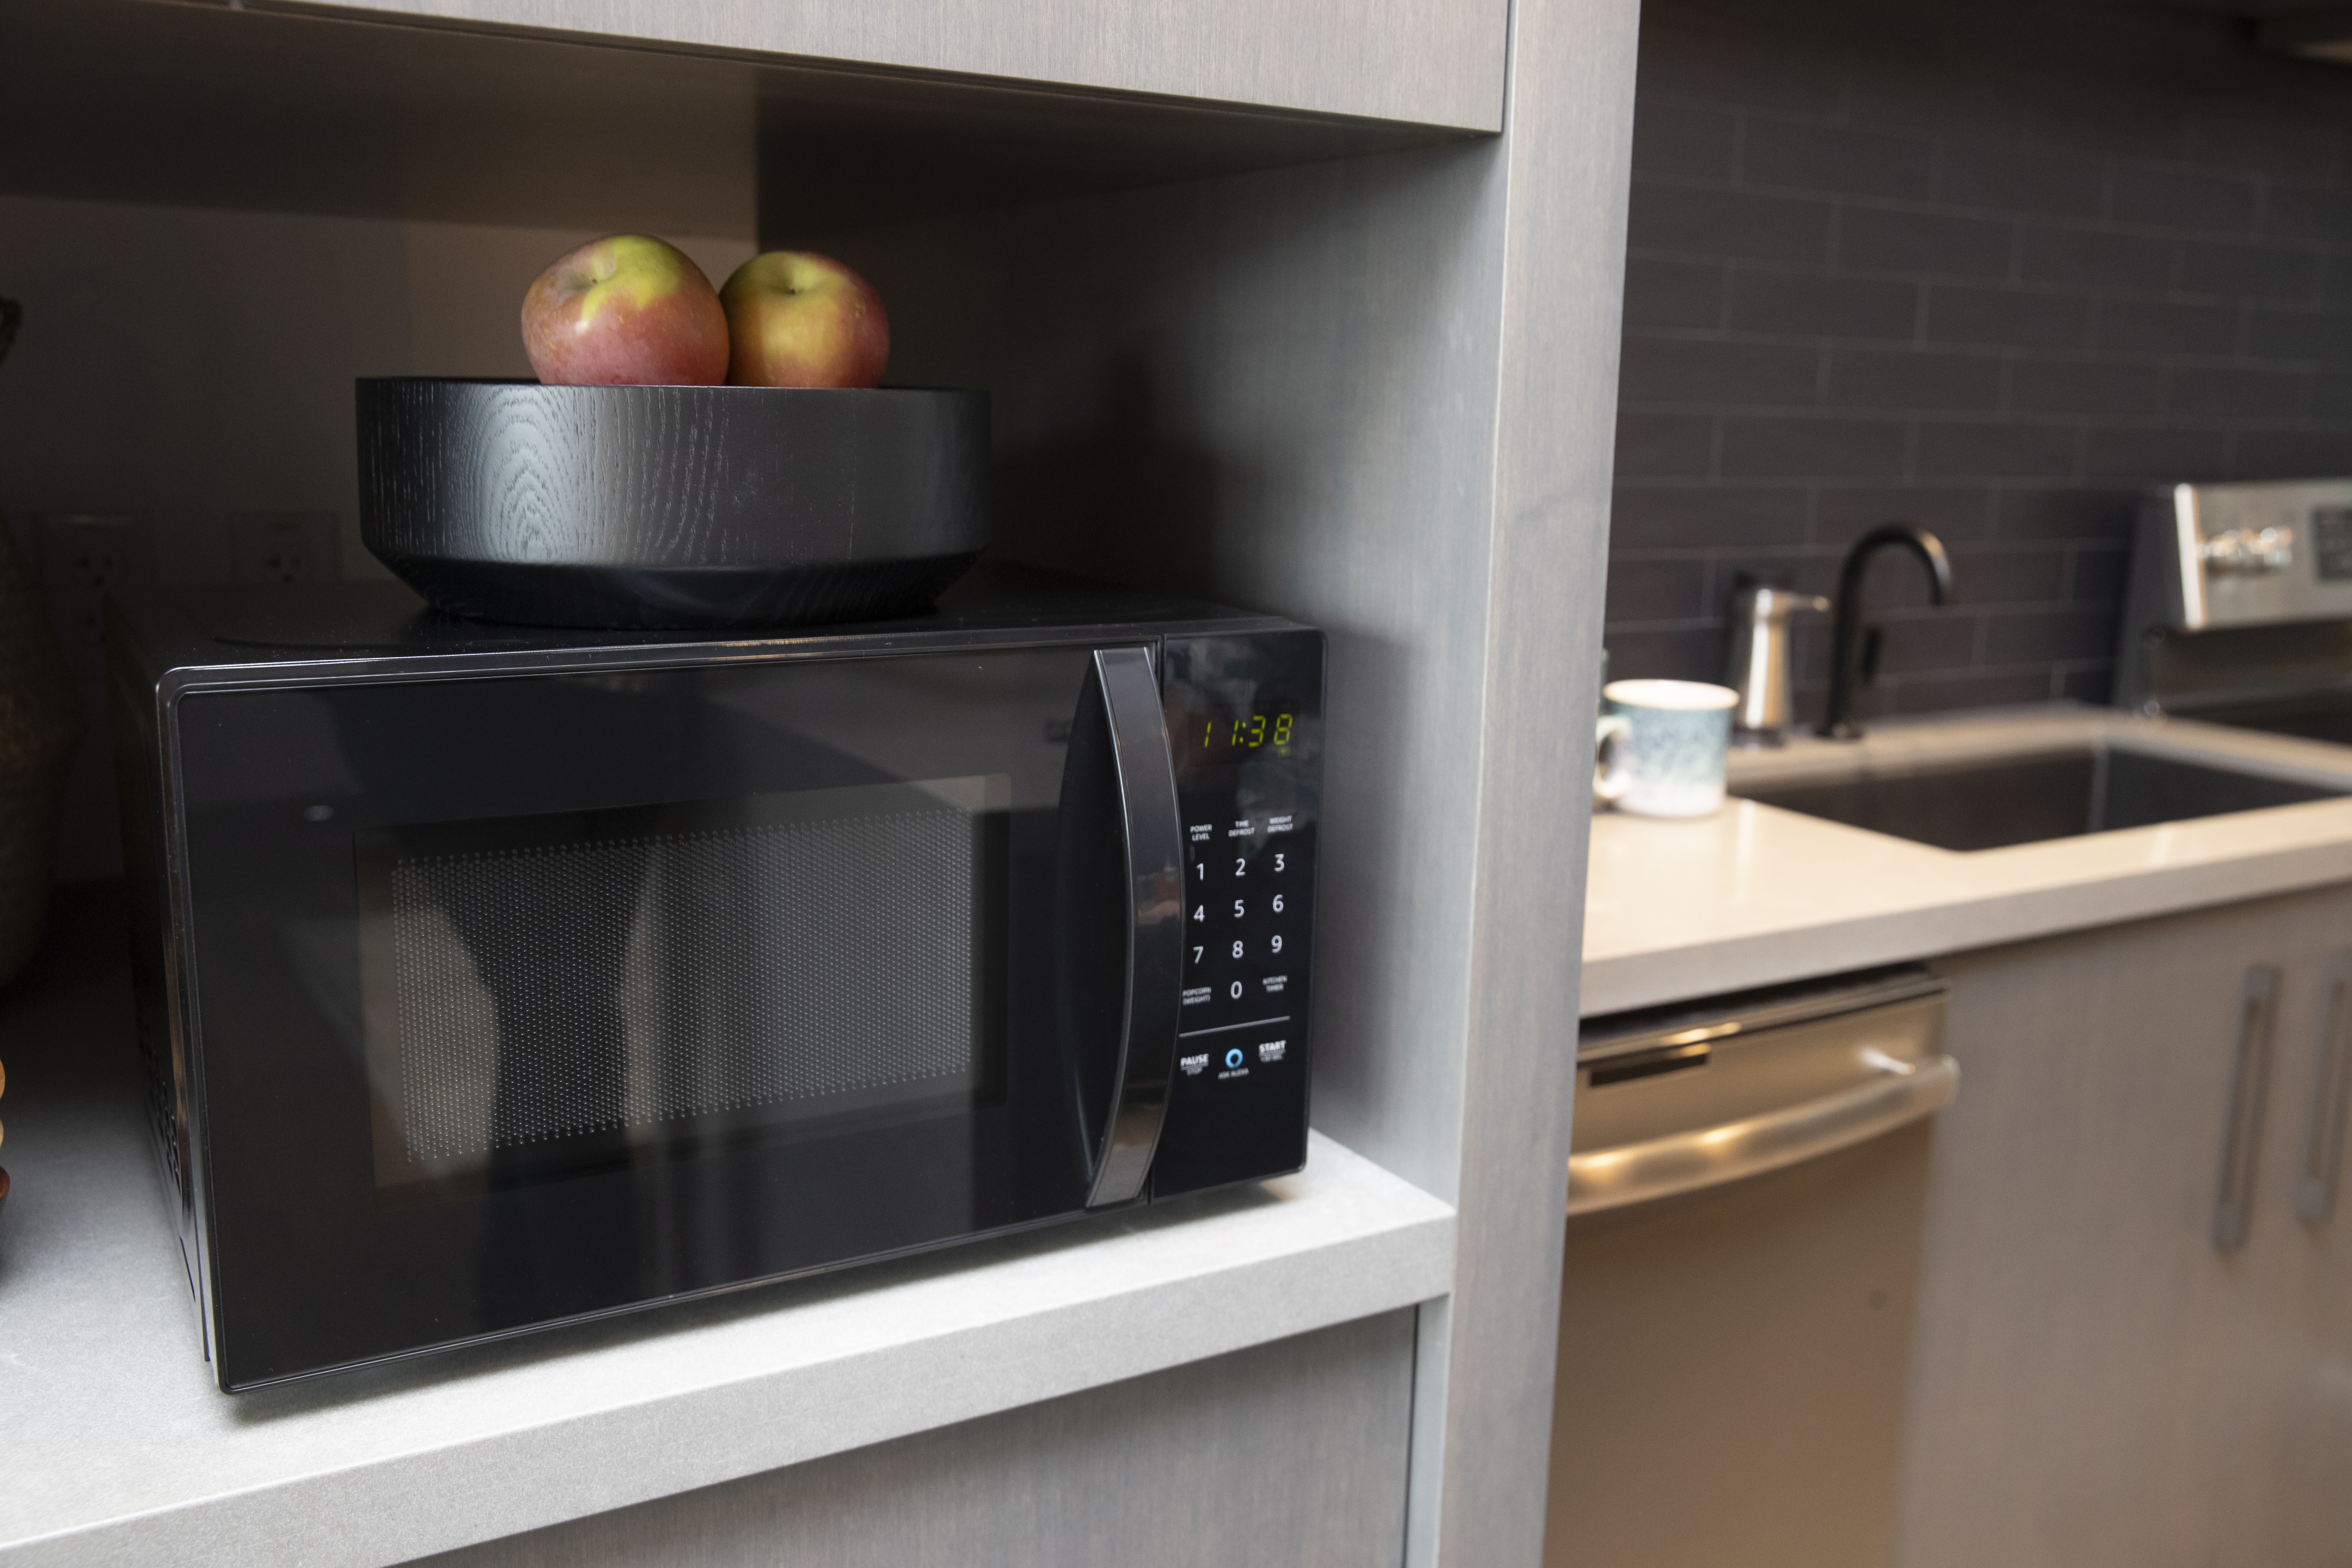 An  Amazonbasics Microwave,  which can be controlled by Alexa, is pictured at  Amazon Headquarters shortly after being launched, on September 20, 2018 in Seattle Washington.